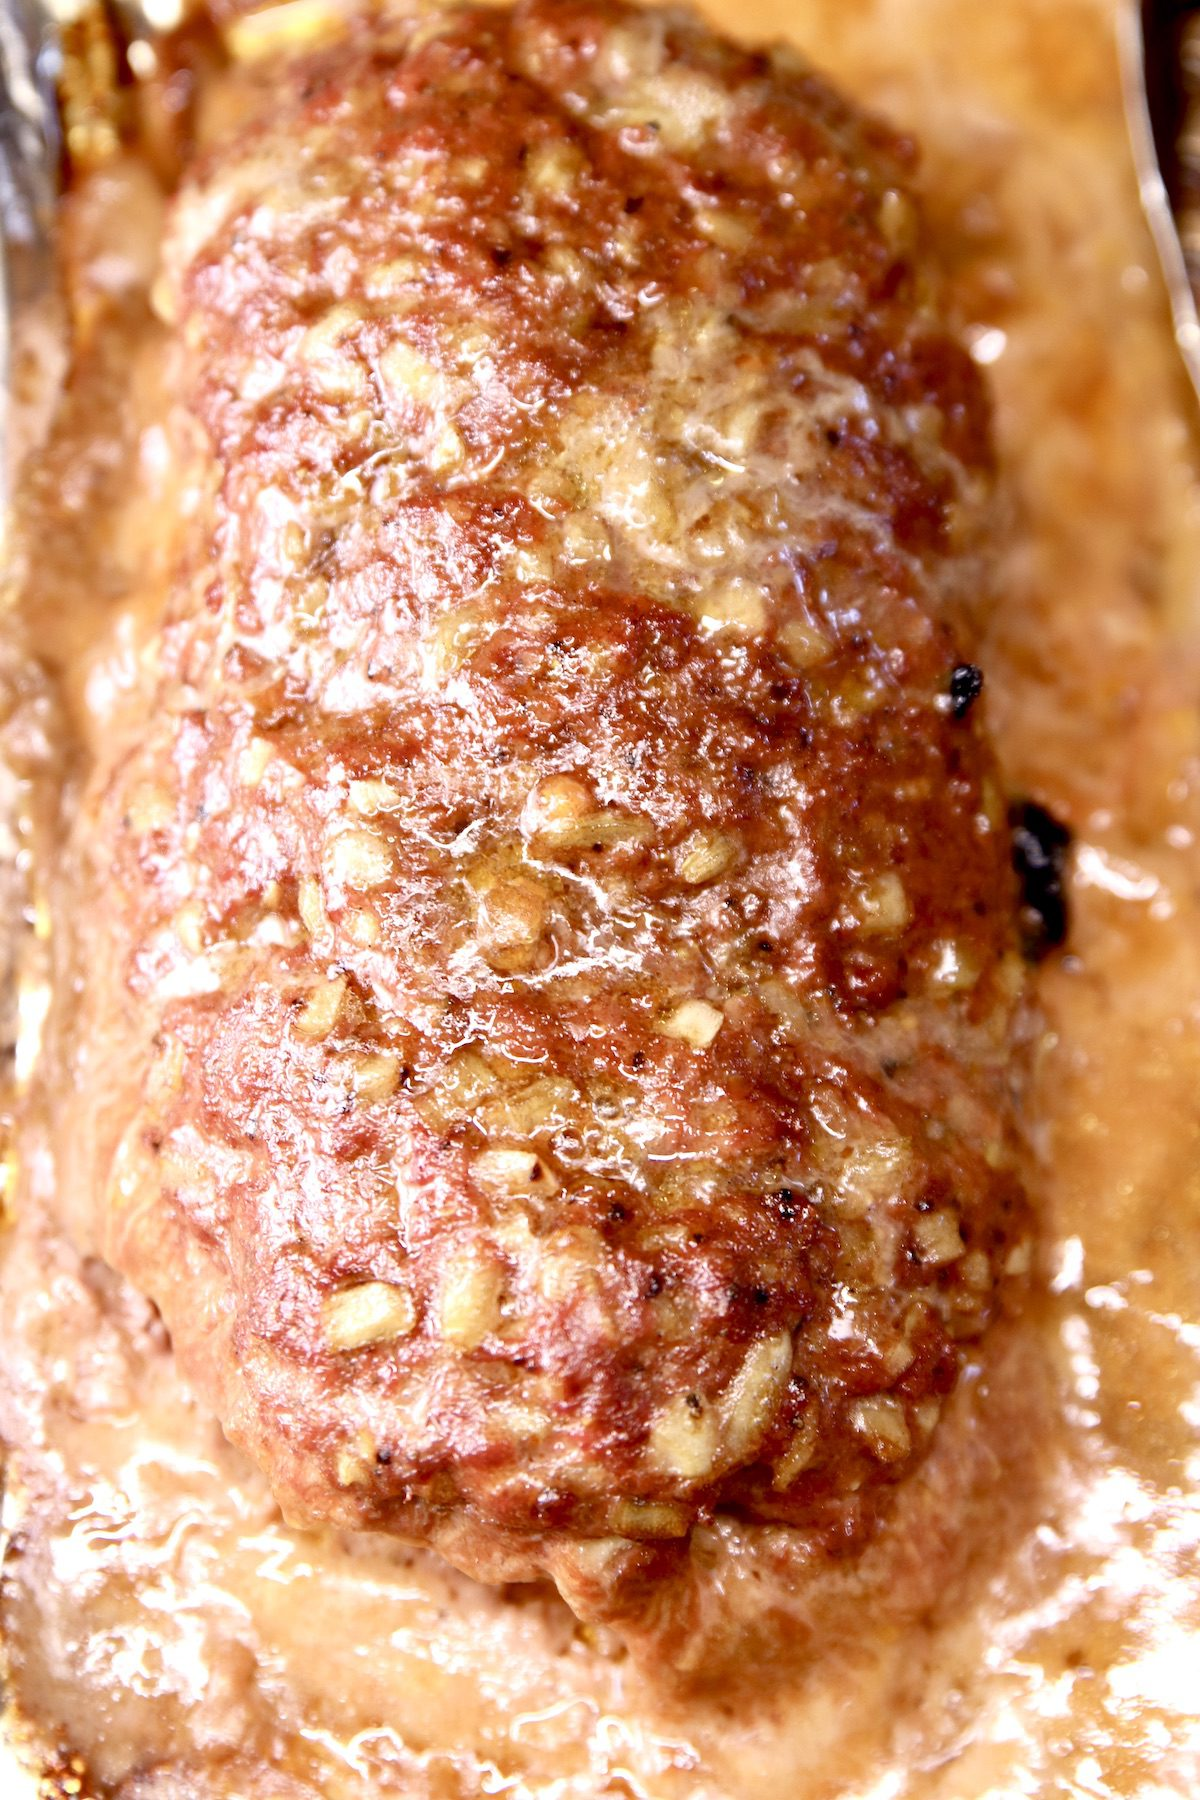 grilled meatloaf - overhead view